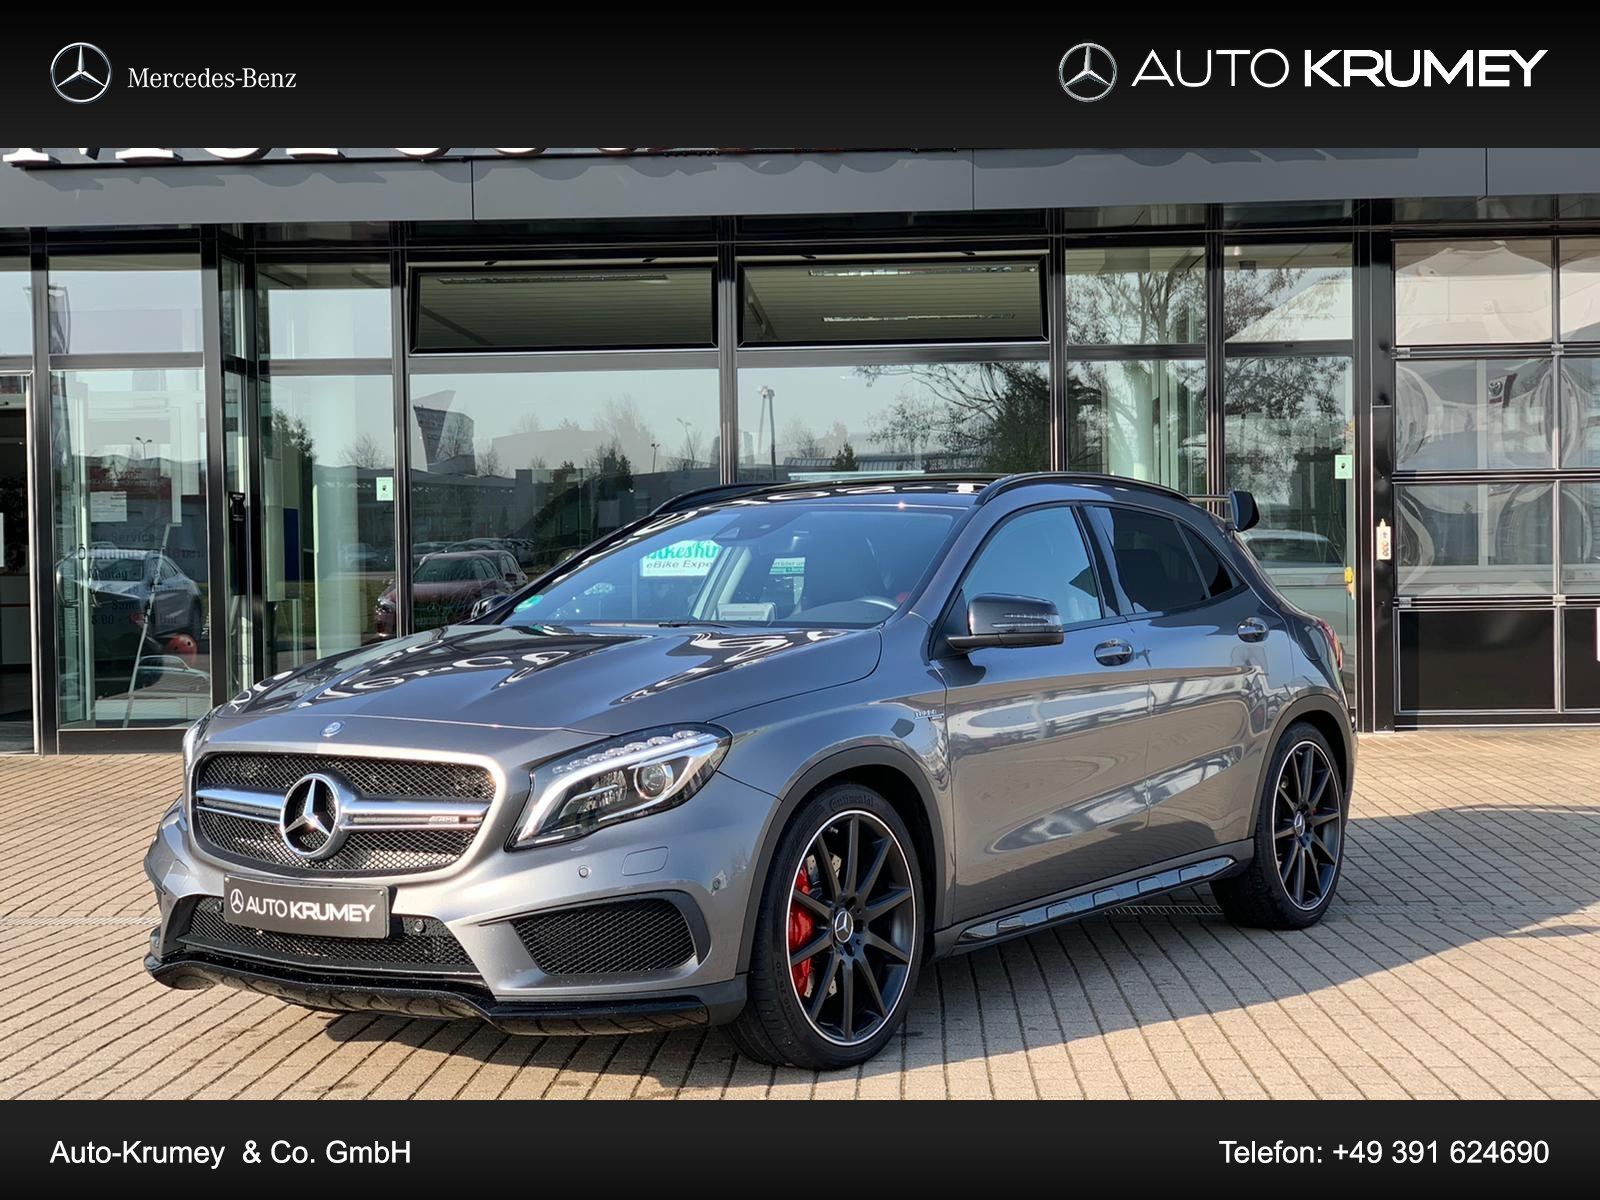 Mercedes-Benz GLA 45 AMG 4Matic COMAND APS,Night-Paket Autom., Jahr 2015, Benzin